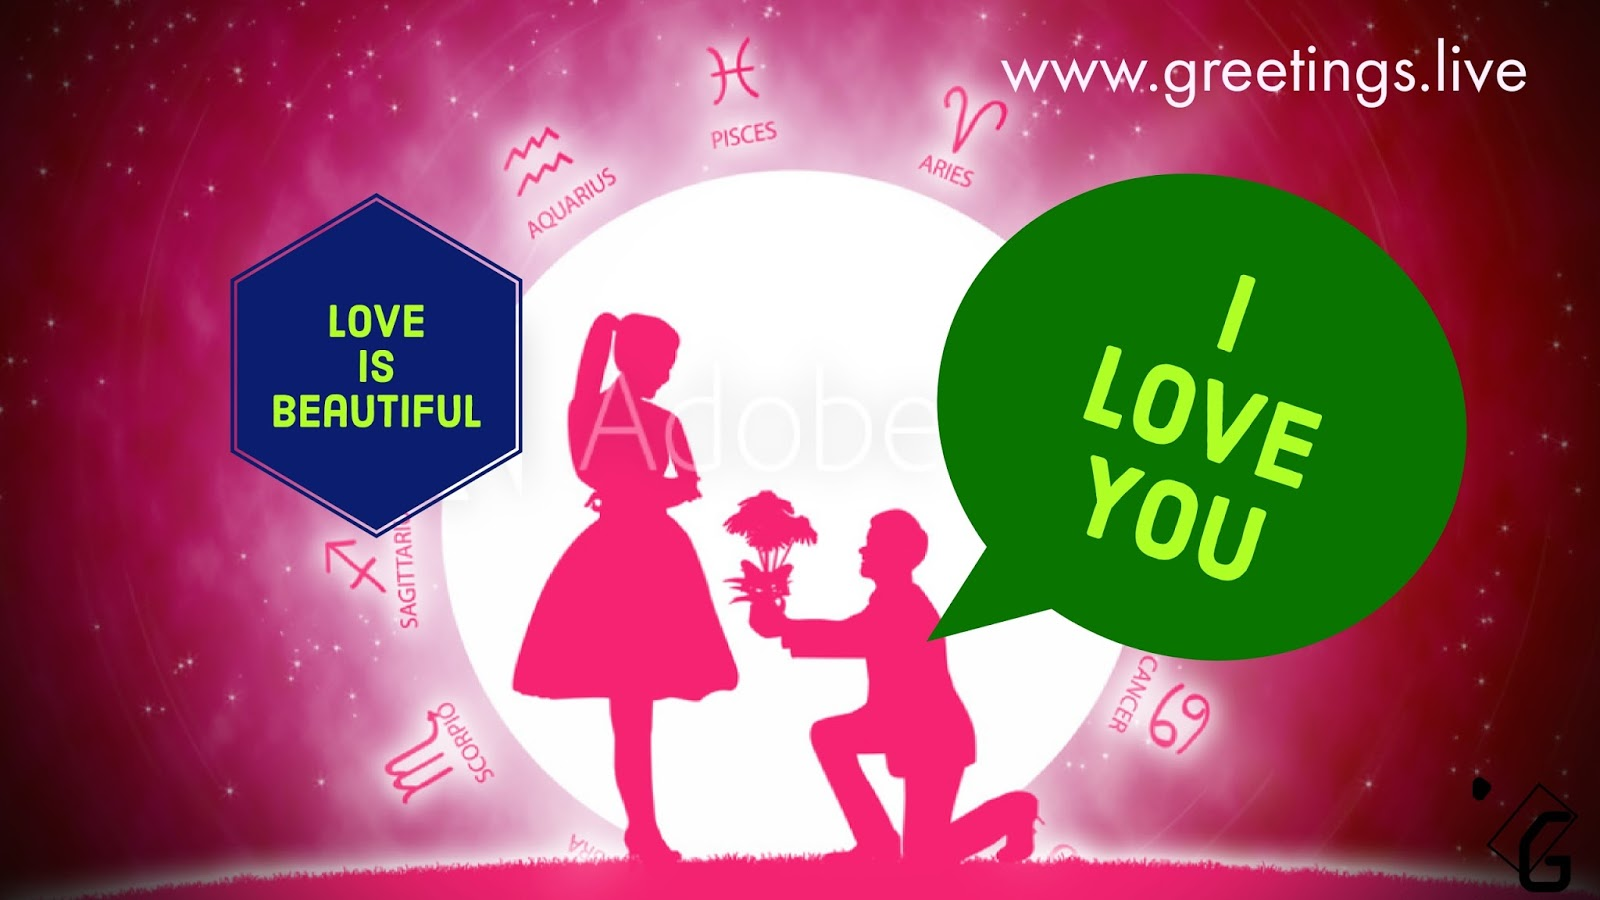 Greetingsve hd images love smile birthday wishes free download love is beautiful lovers day greetings live hd kristyandbryce Image collections